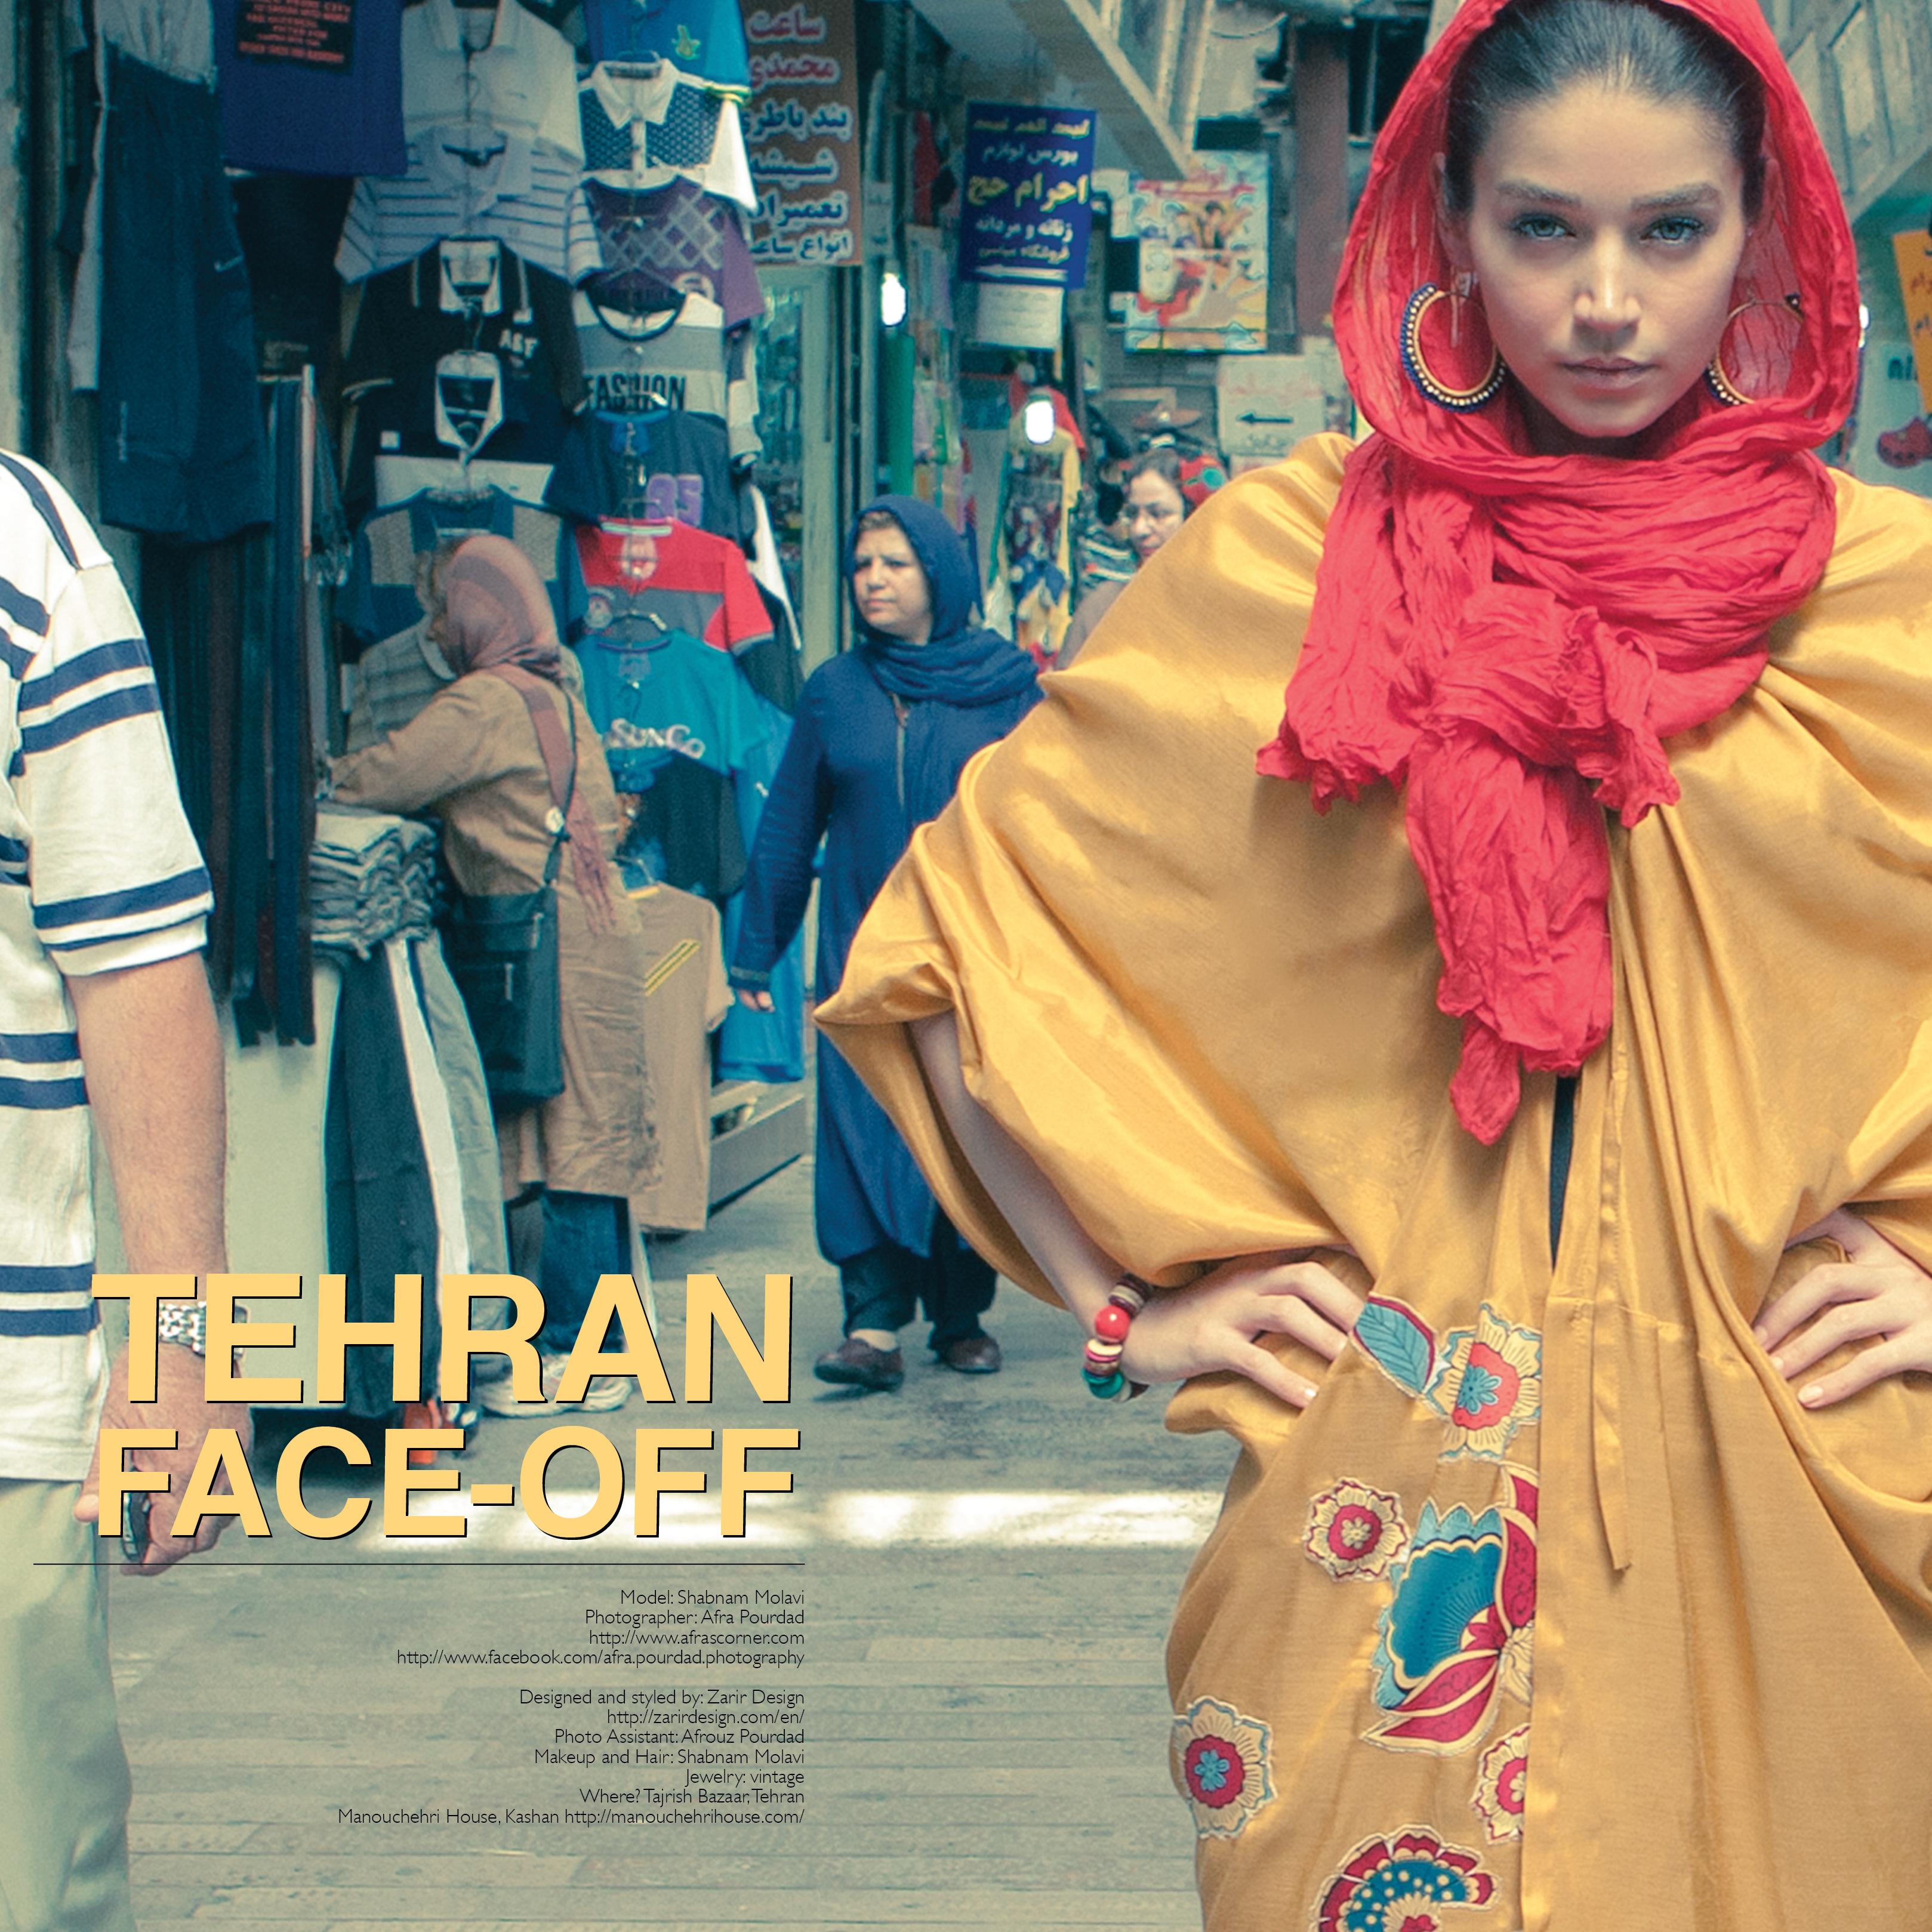 California-based magazine FSHN ran an Iran photo shoot in its 2013 couture issue.